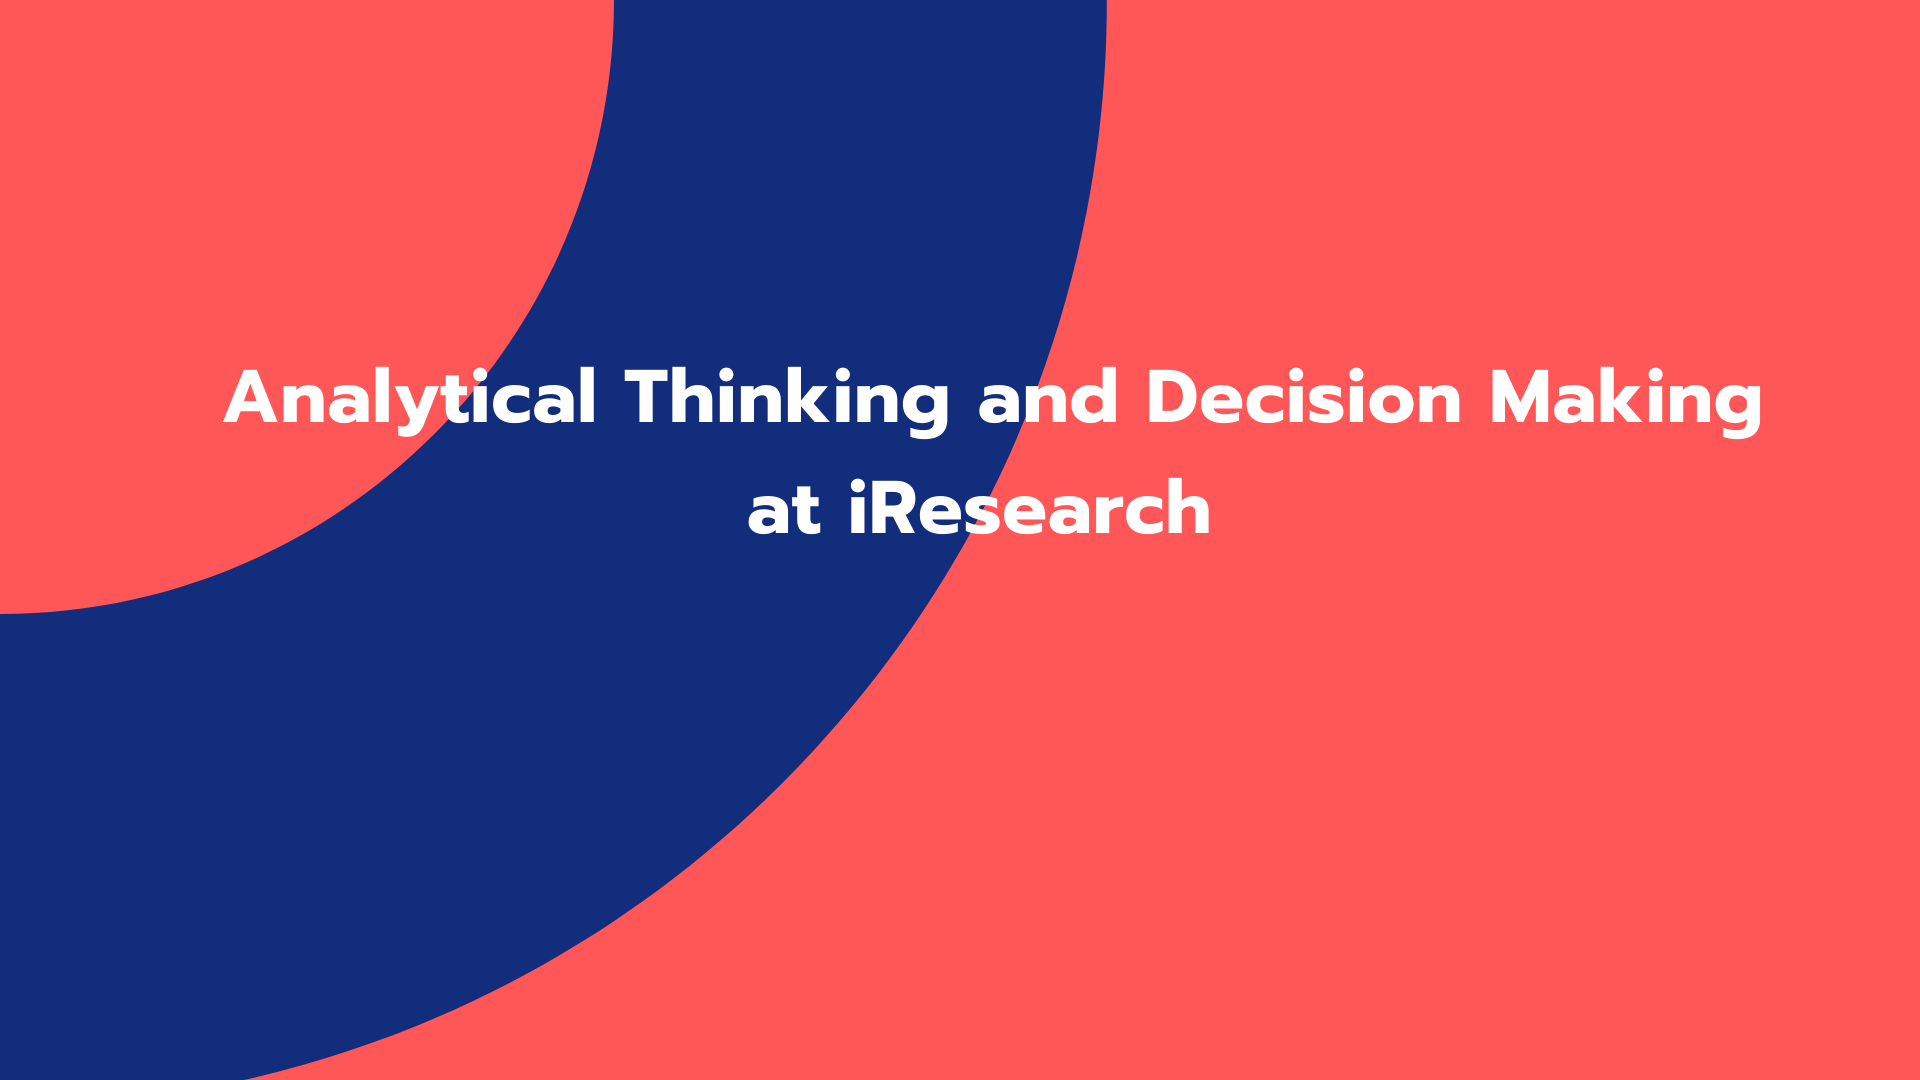 Analytical Thinking and Decision Making at iResearch